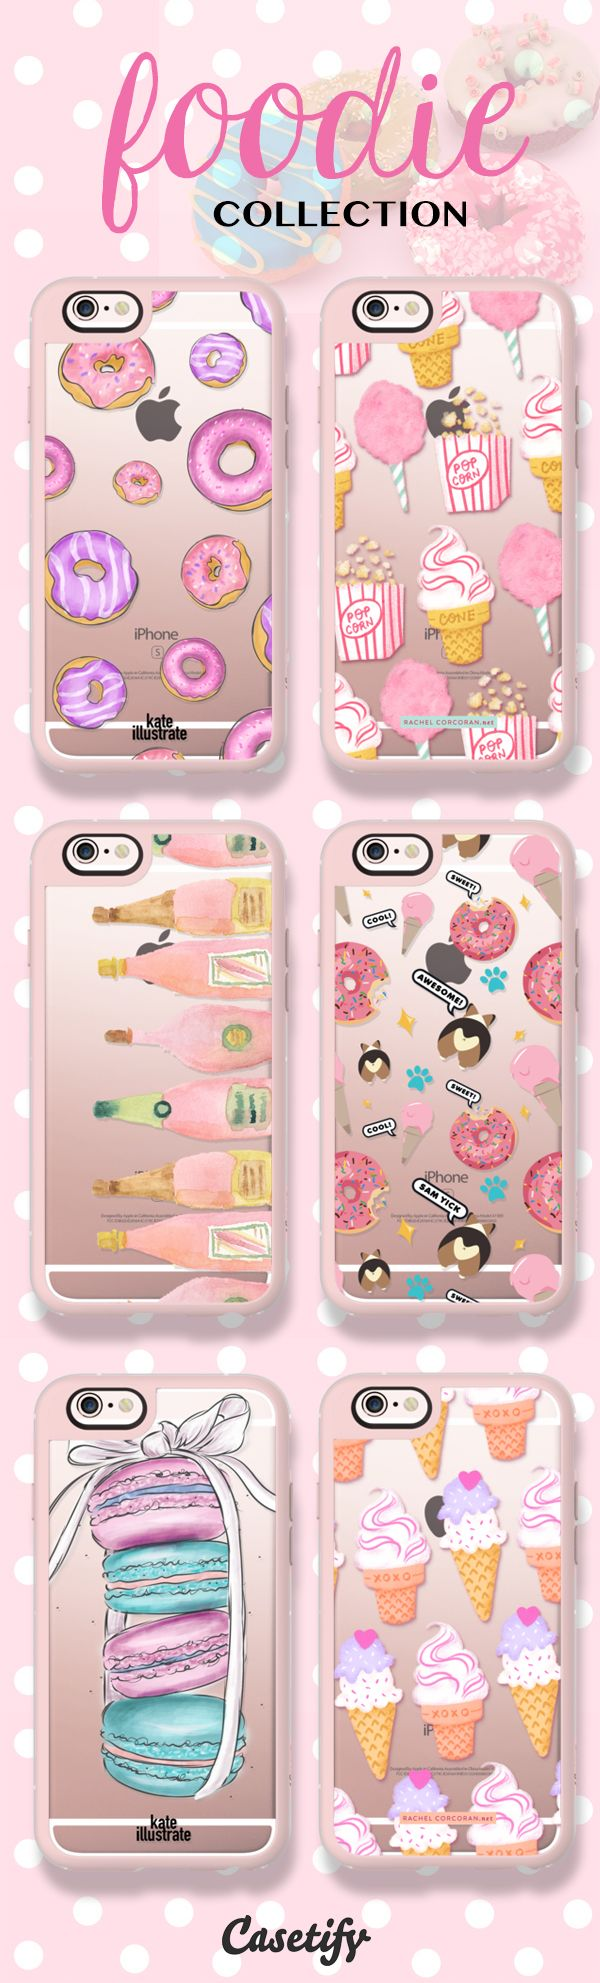 The sweet life. Food and love! Shop our newest Foodie Collection here: https://www.casetify.com/foodie | @casetify